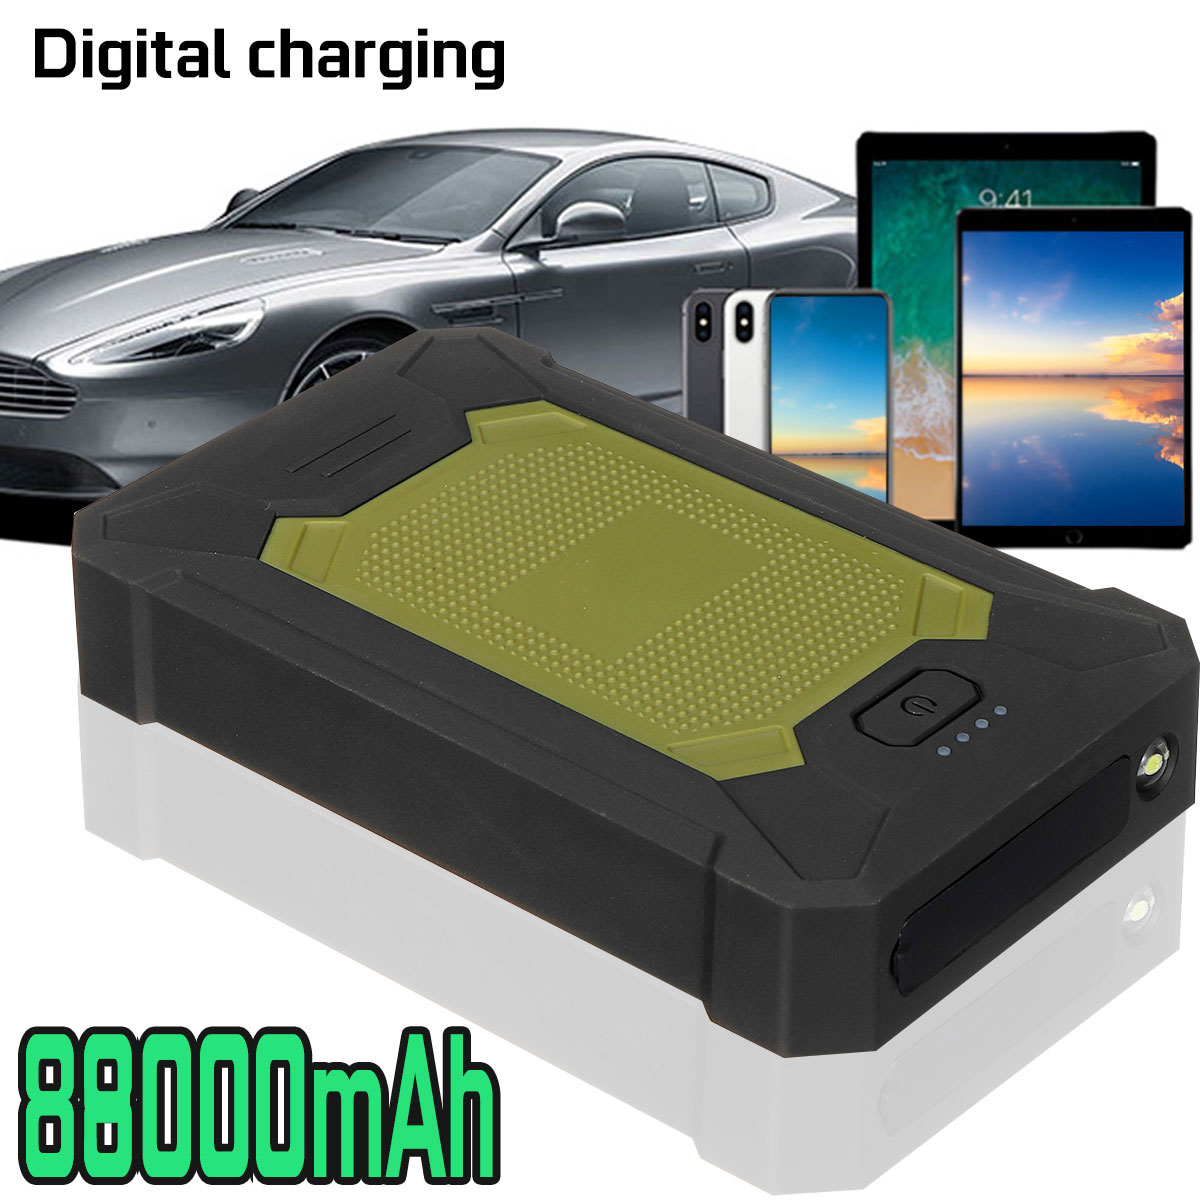 Multifunction Car Jump Starter 88800mAh 5V 600A 4 USB LED Portable Slim Emergency Power Bank Battery